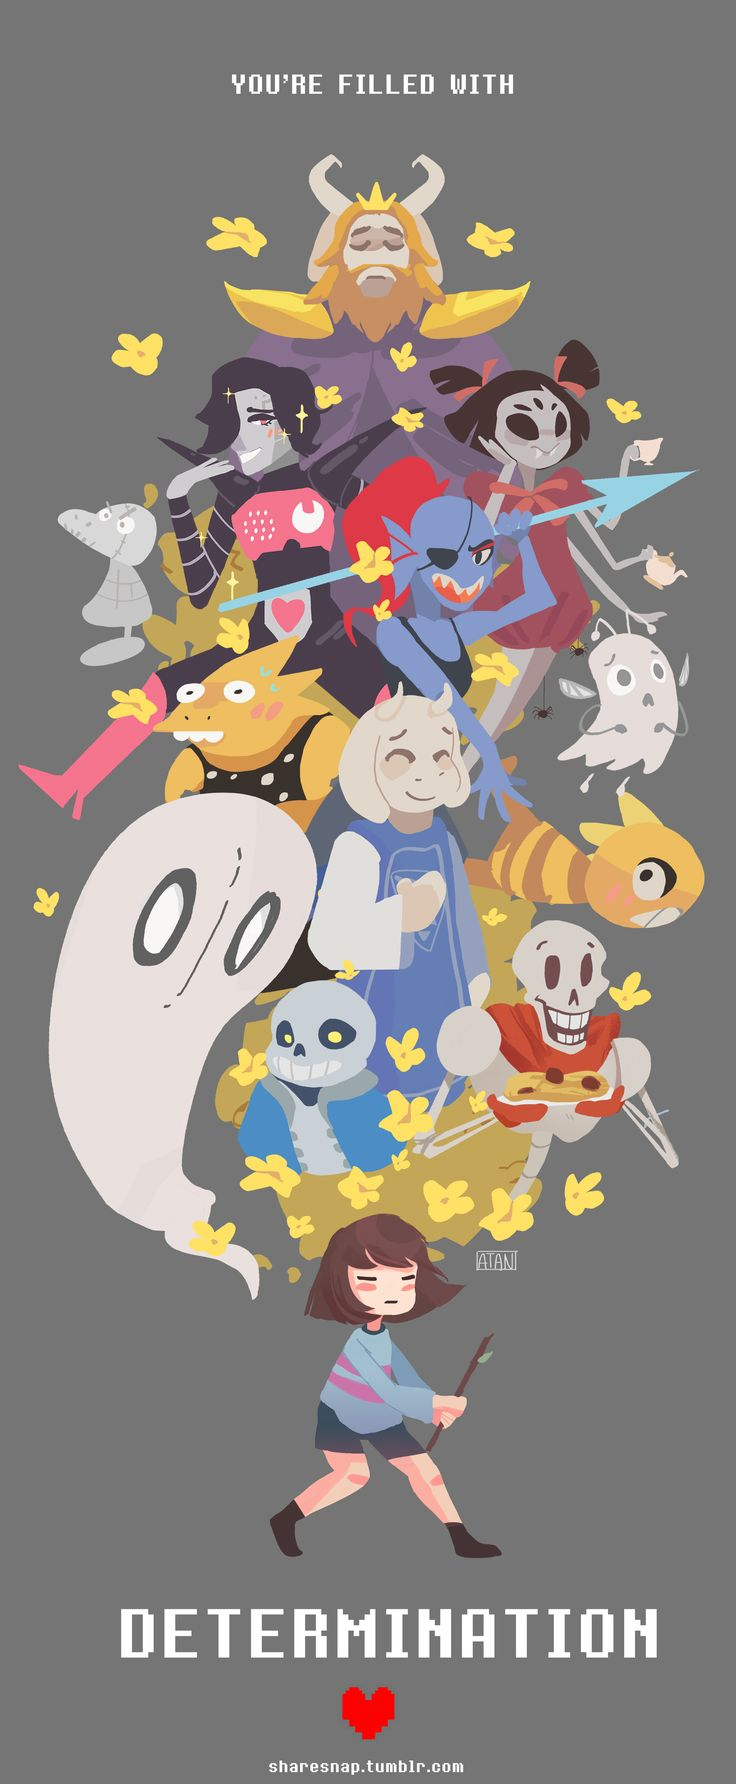 Undertale iphone wallpaper tumblr - Undertale By Mastercheefs Deviantart Com On Deviantart